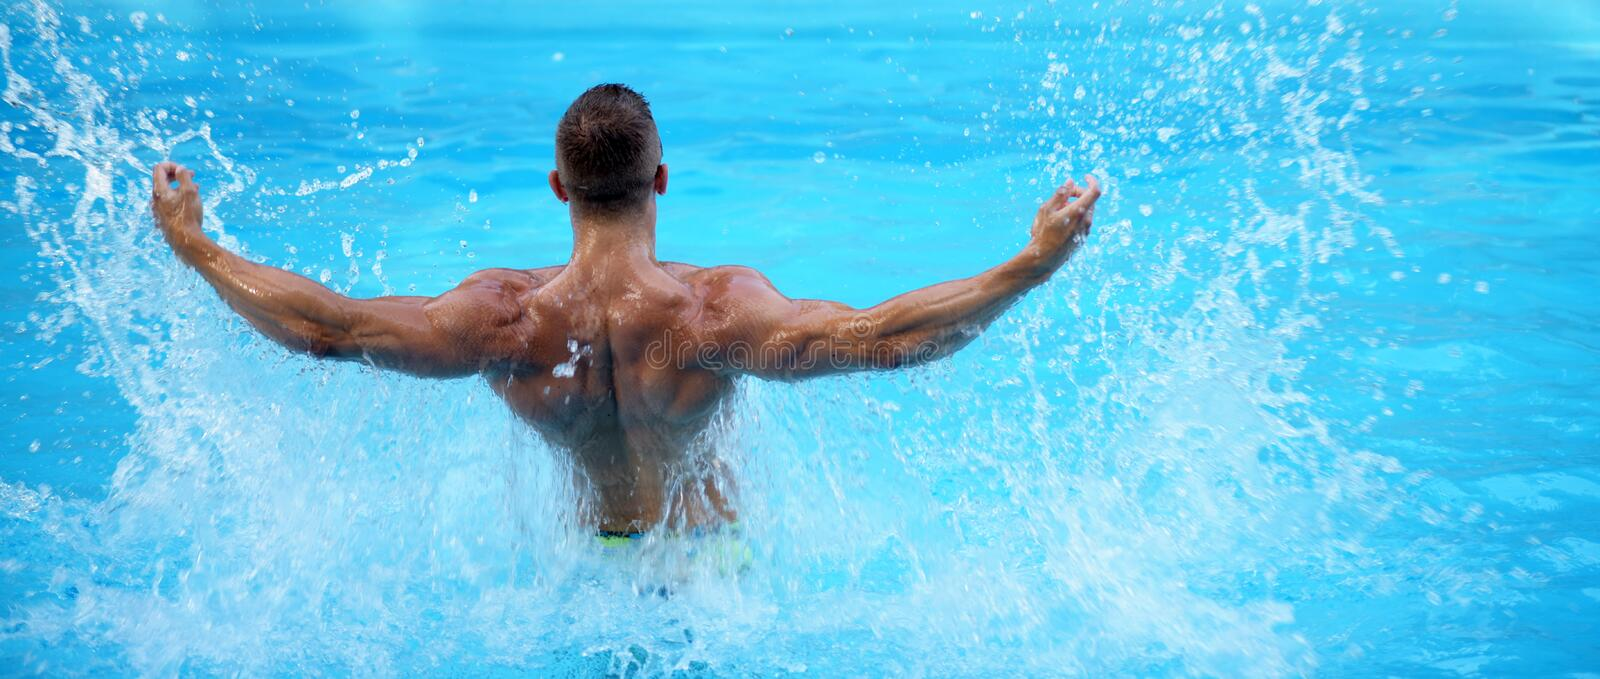 Perfect male Torso on blue water background. Maldives or Miami beach water. Handsome man having fun in summertime. Young stock photography